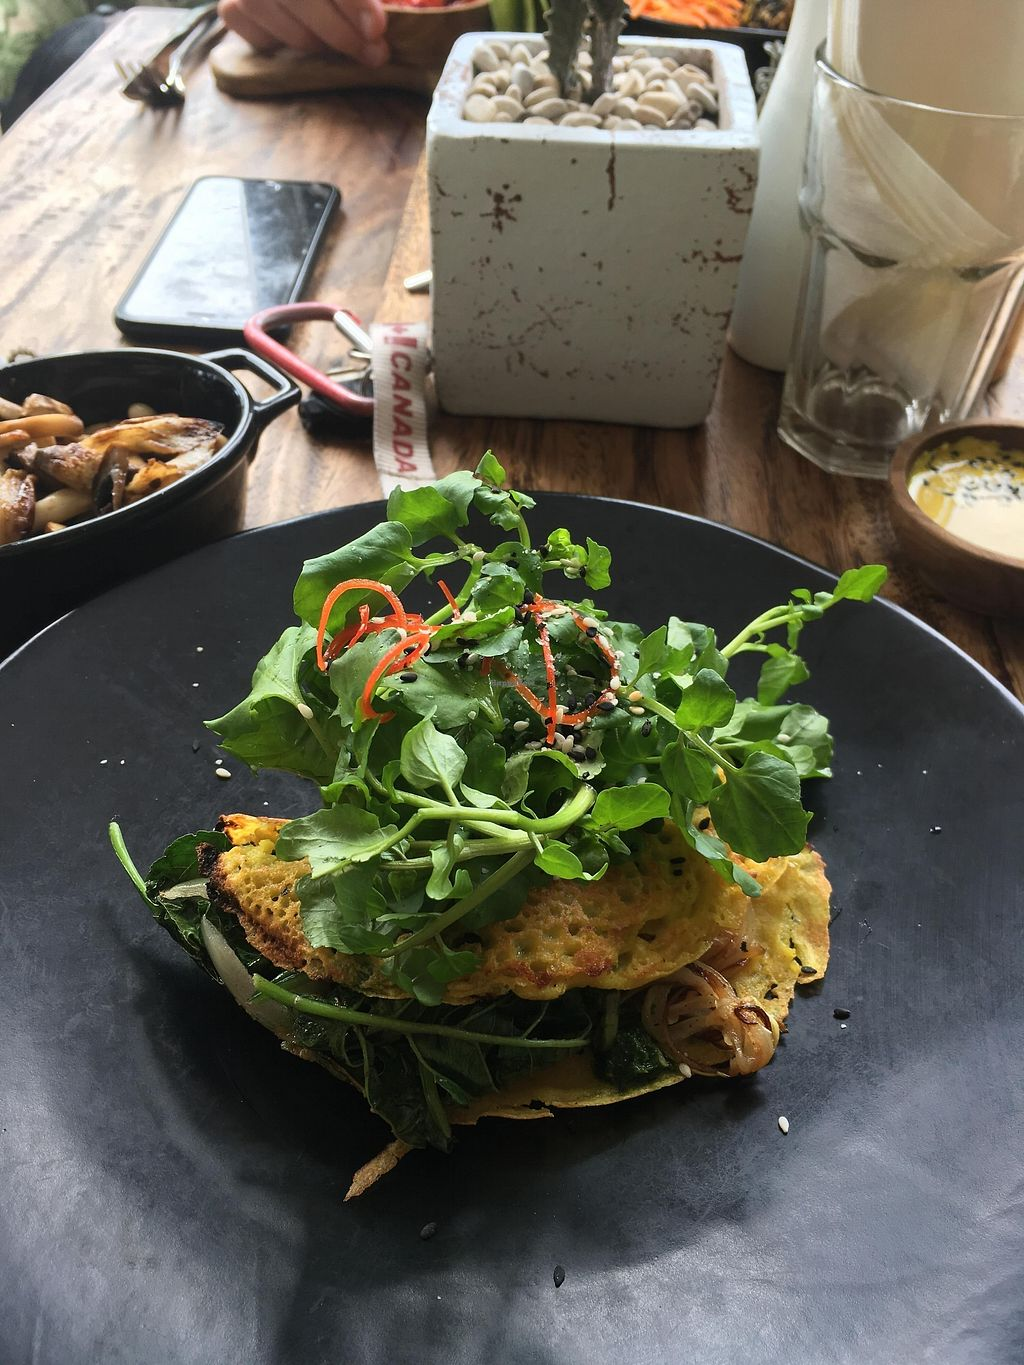 """Photo of Two Trees Eatery  by <a href=""""/members/profile/emmarosewitched"""">emmarosewitched</a> <br/>The vegan chickpea omelette: served with coconut cheese, fried spinach,  potatoes (inside omelette) and greens.  <br/> January 7, 2018  - <a href='/contact/abuse/image/108911/343868'>Report</a>"""